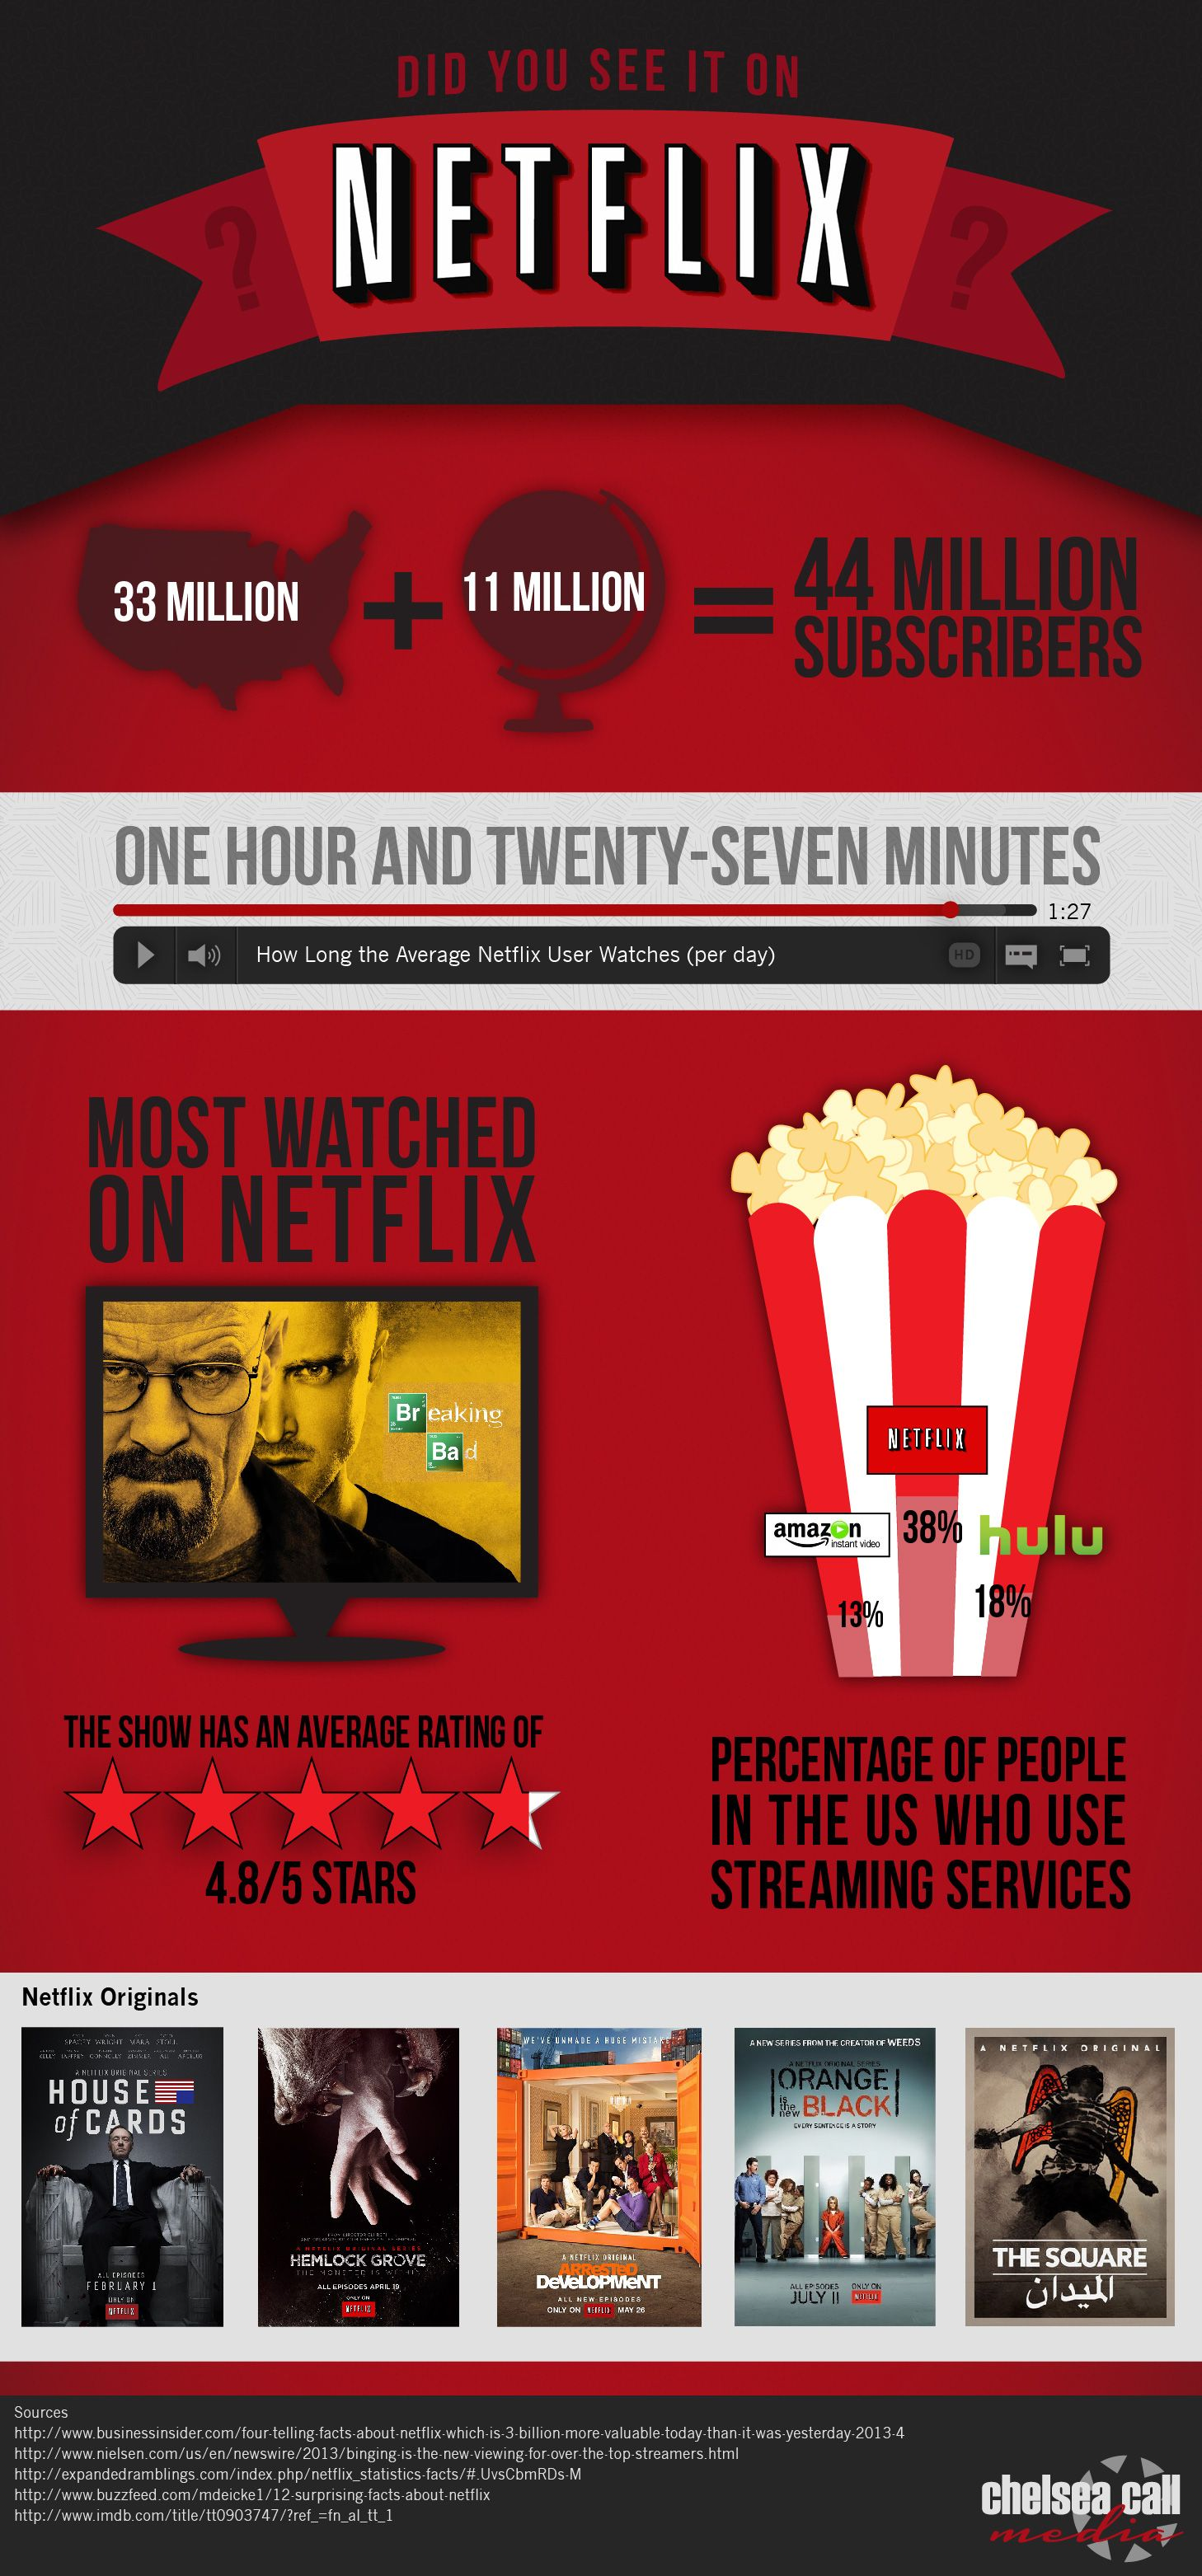 Netflix infographic by chelsea call media infografica